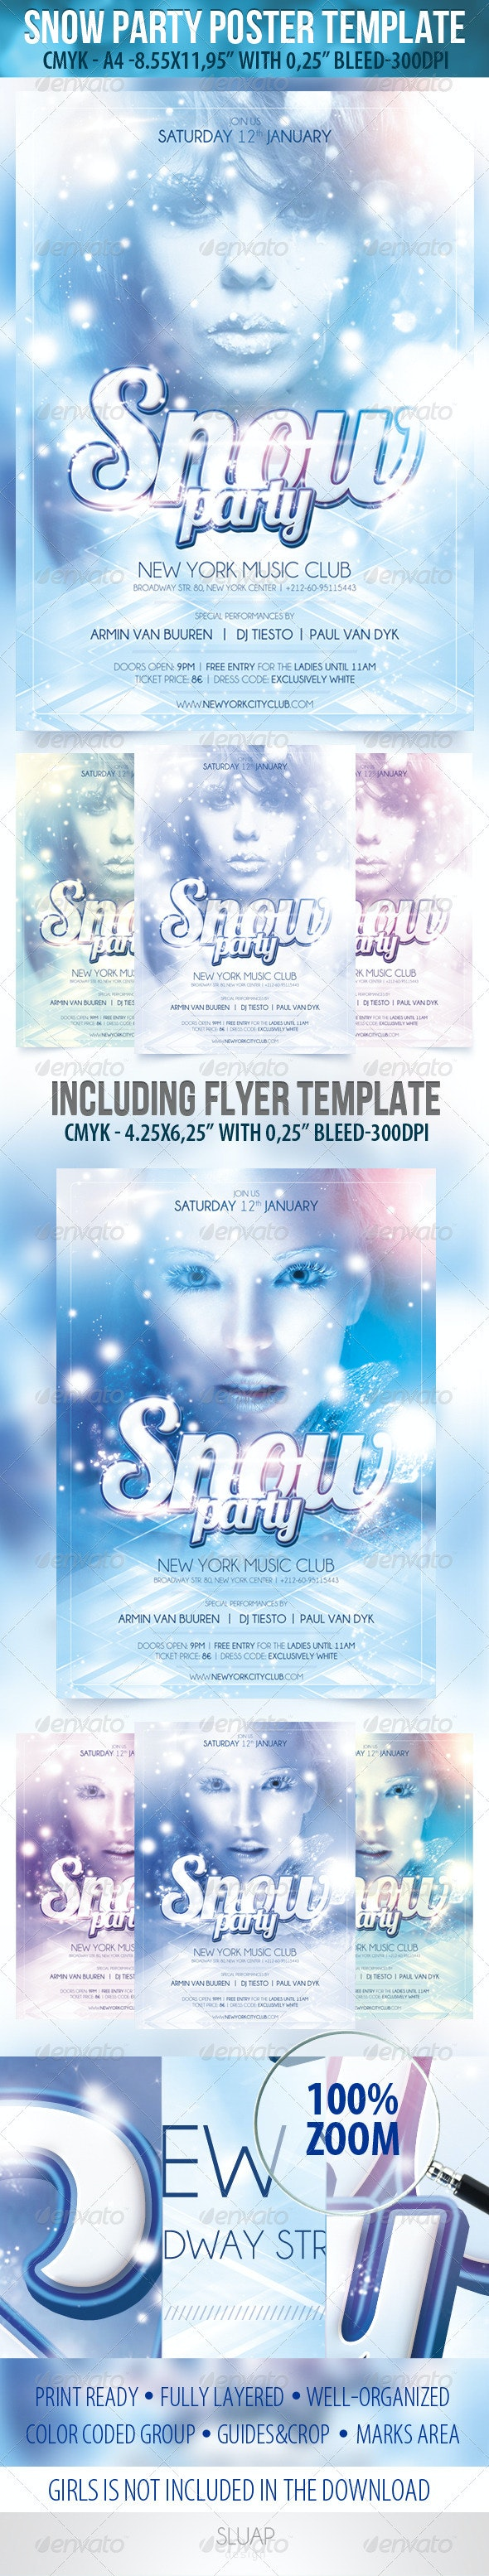 Snow Party-Poster Template & Snow Party-Flyer Temp - Events Flyers